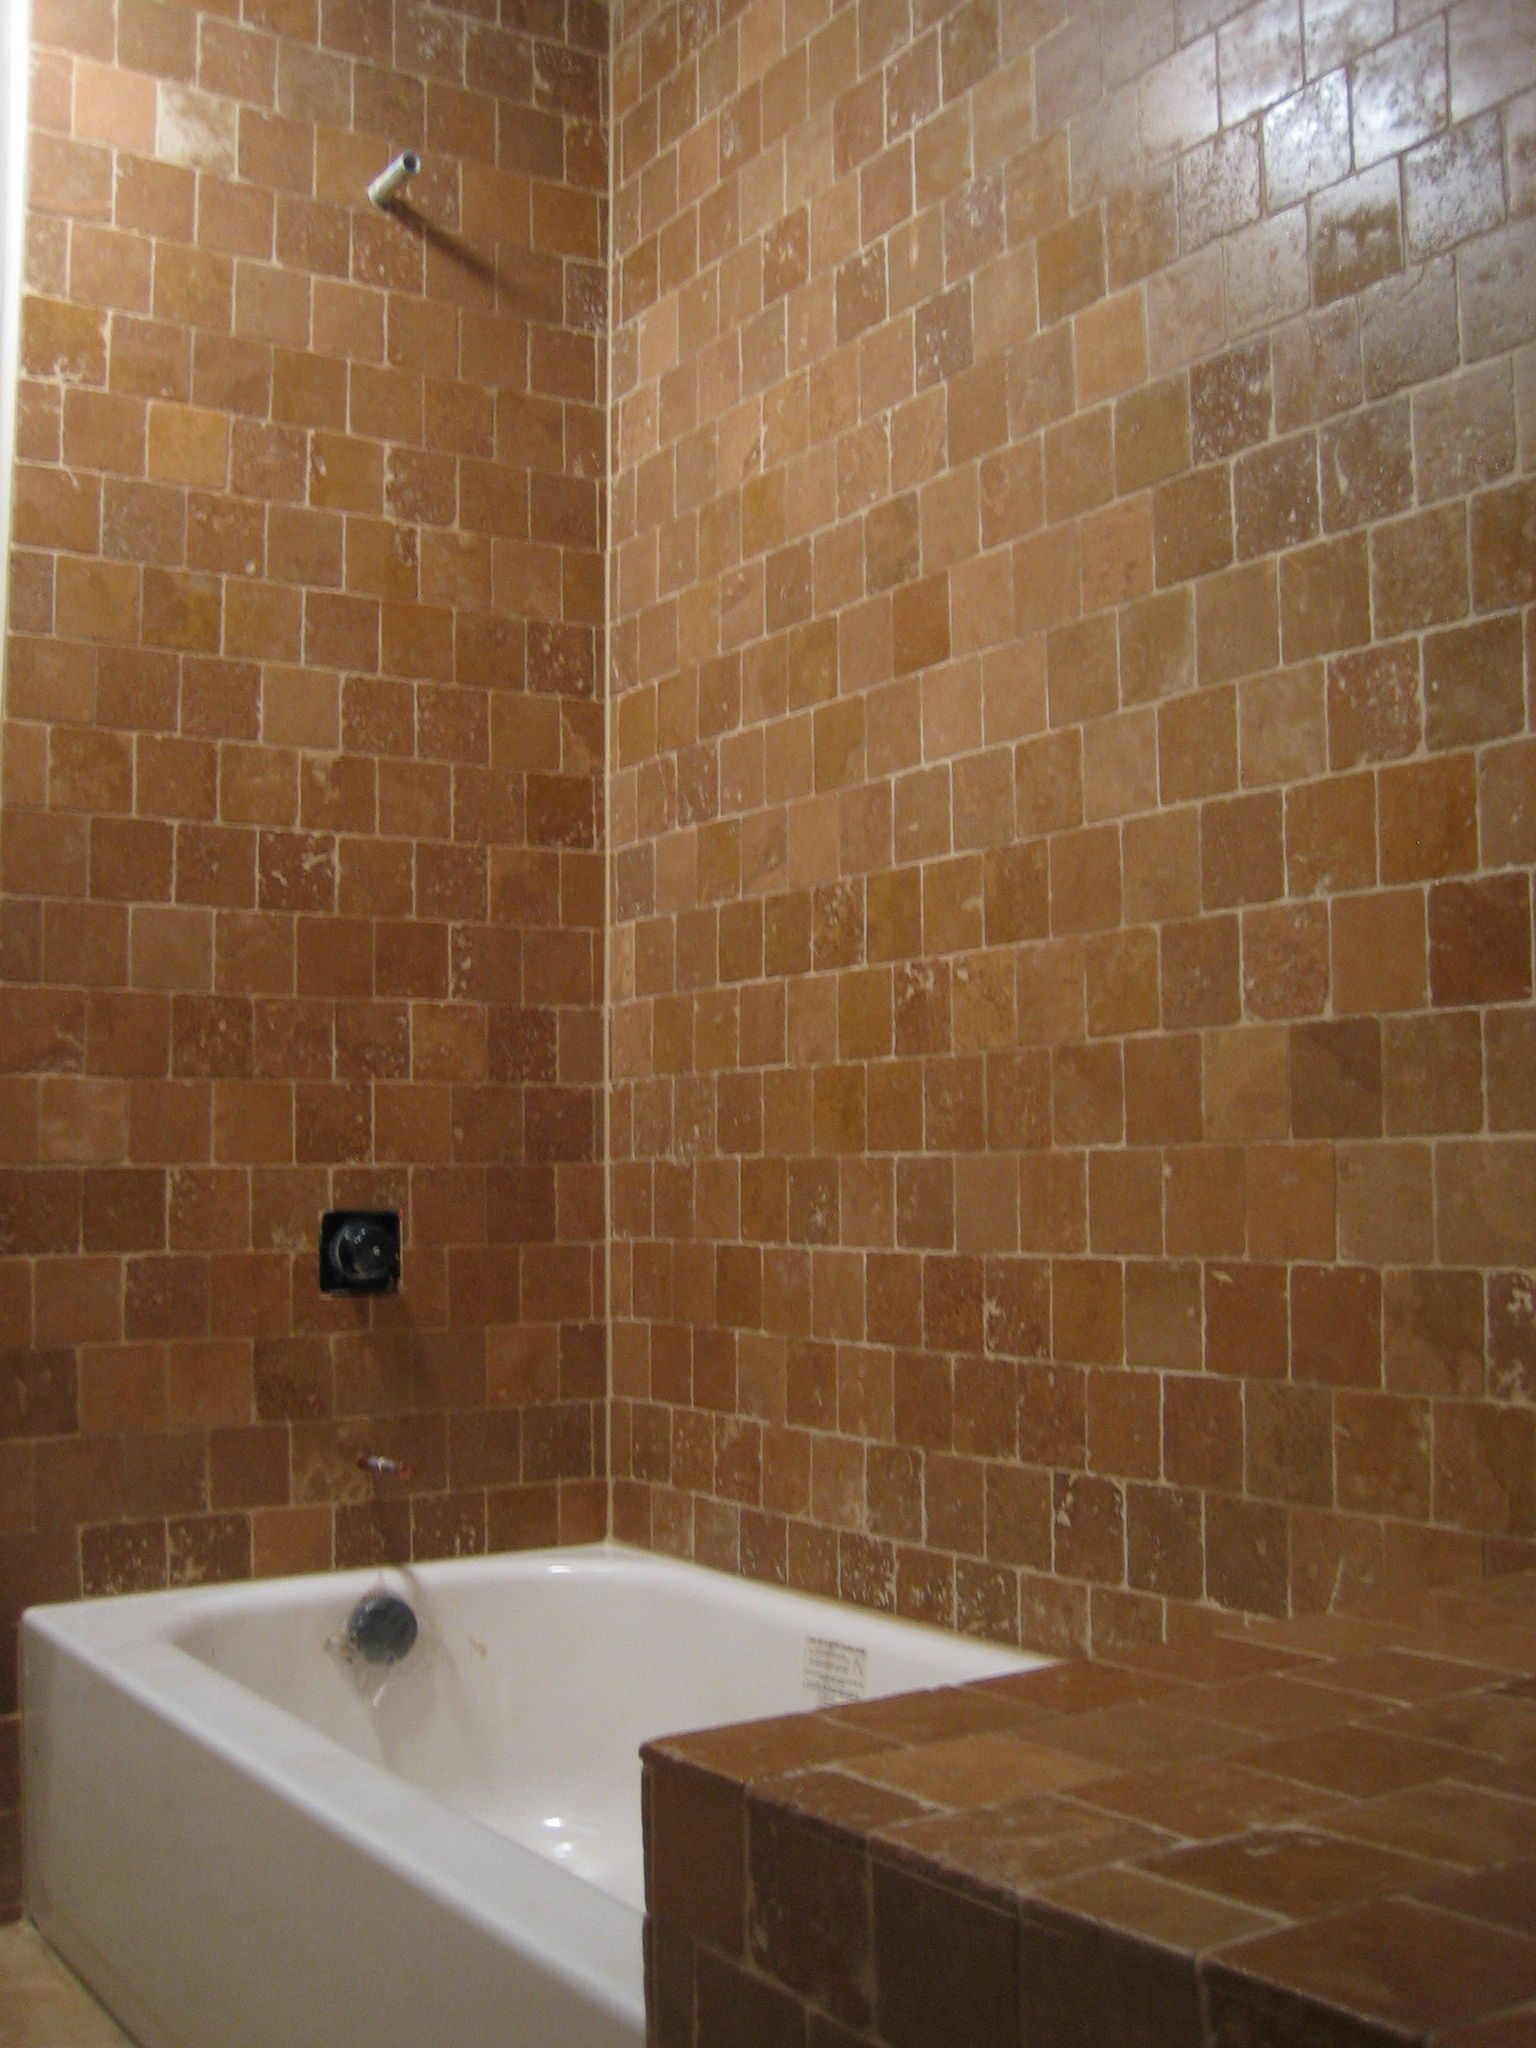 Tiled tub surround pictures bathtub surrounds ma bathtub tile tiled tub surround pictures bathtub surrounds ma bathtub tile surrounds dailygadgetfo Gallery